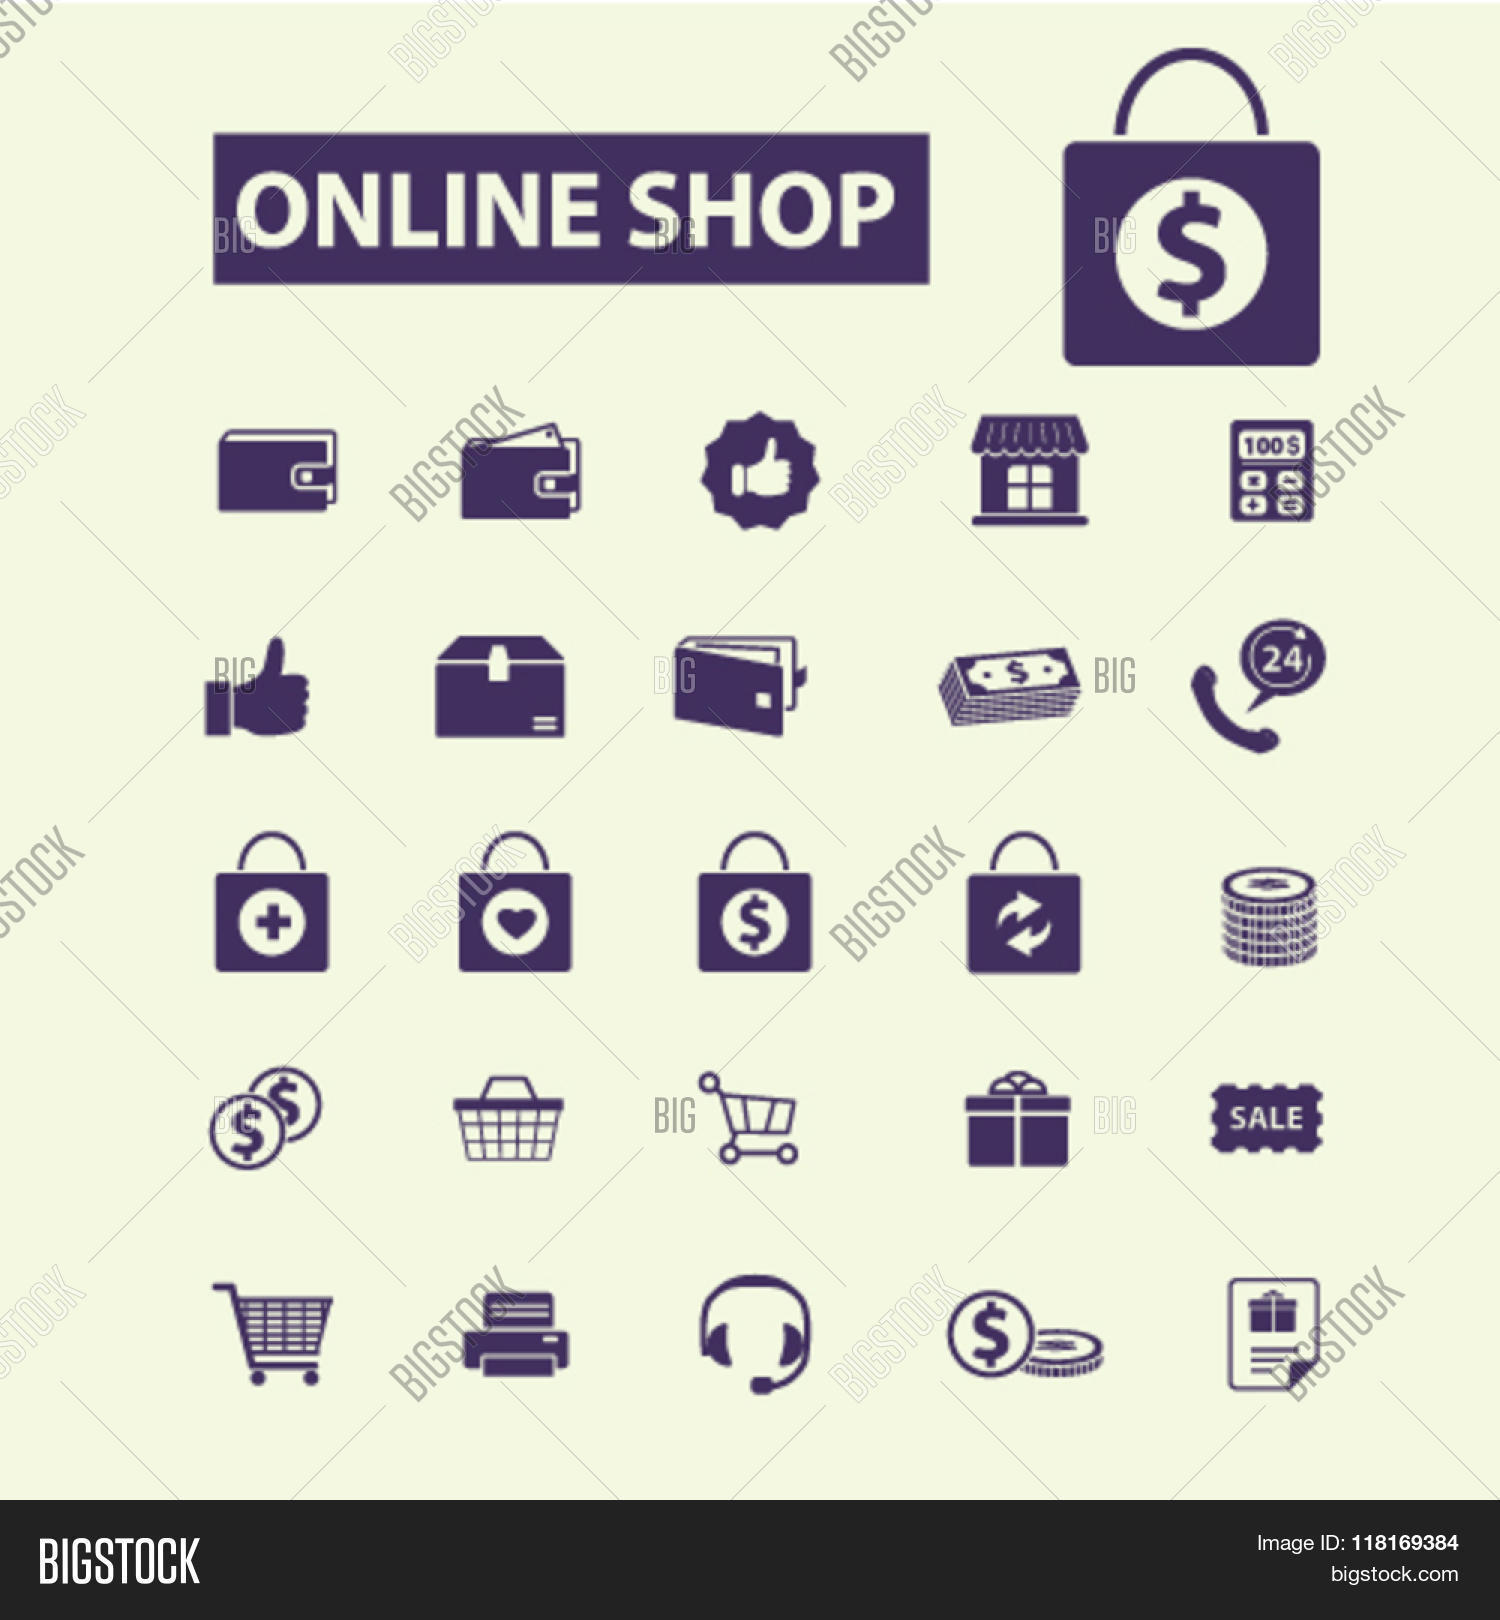 Online shop icons shopping signs vector photo bigstock for Online store for shopping